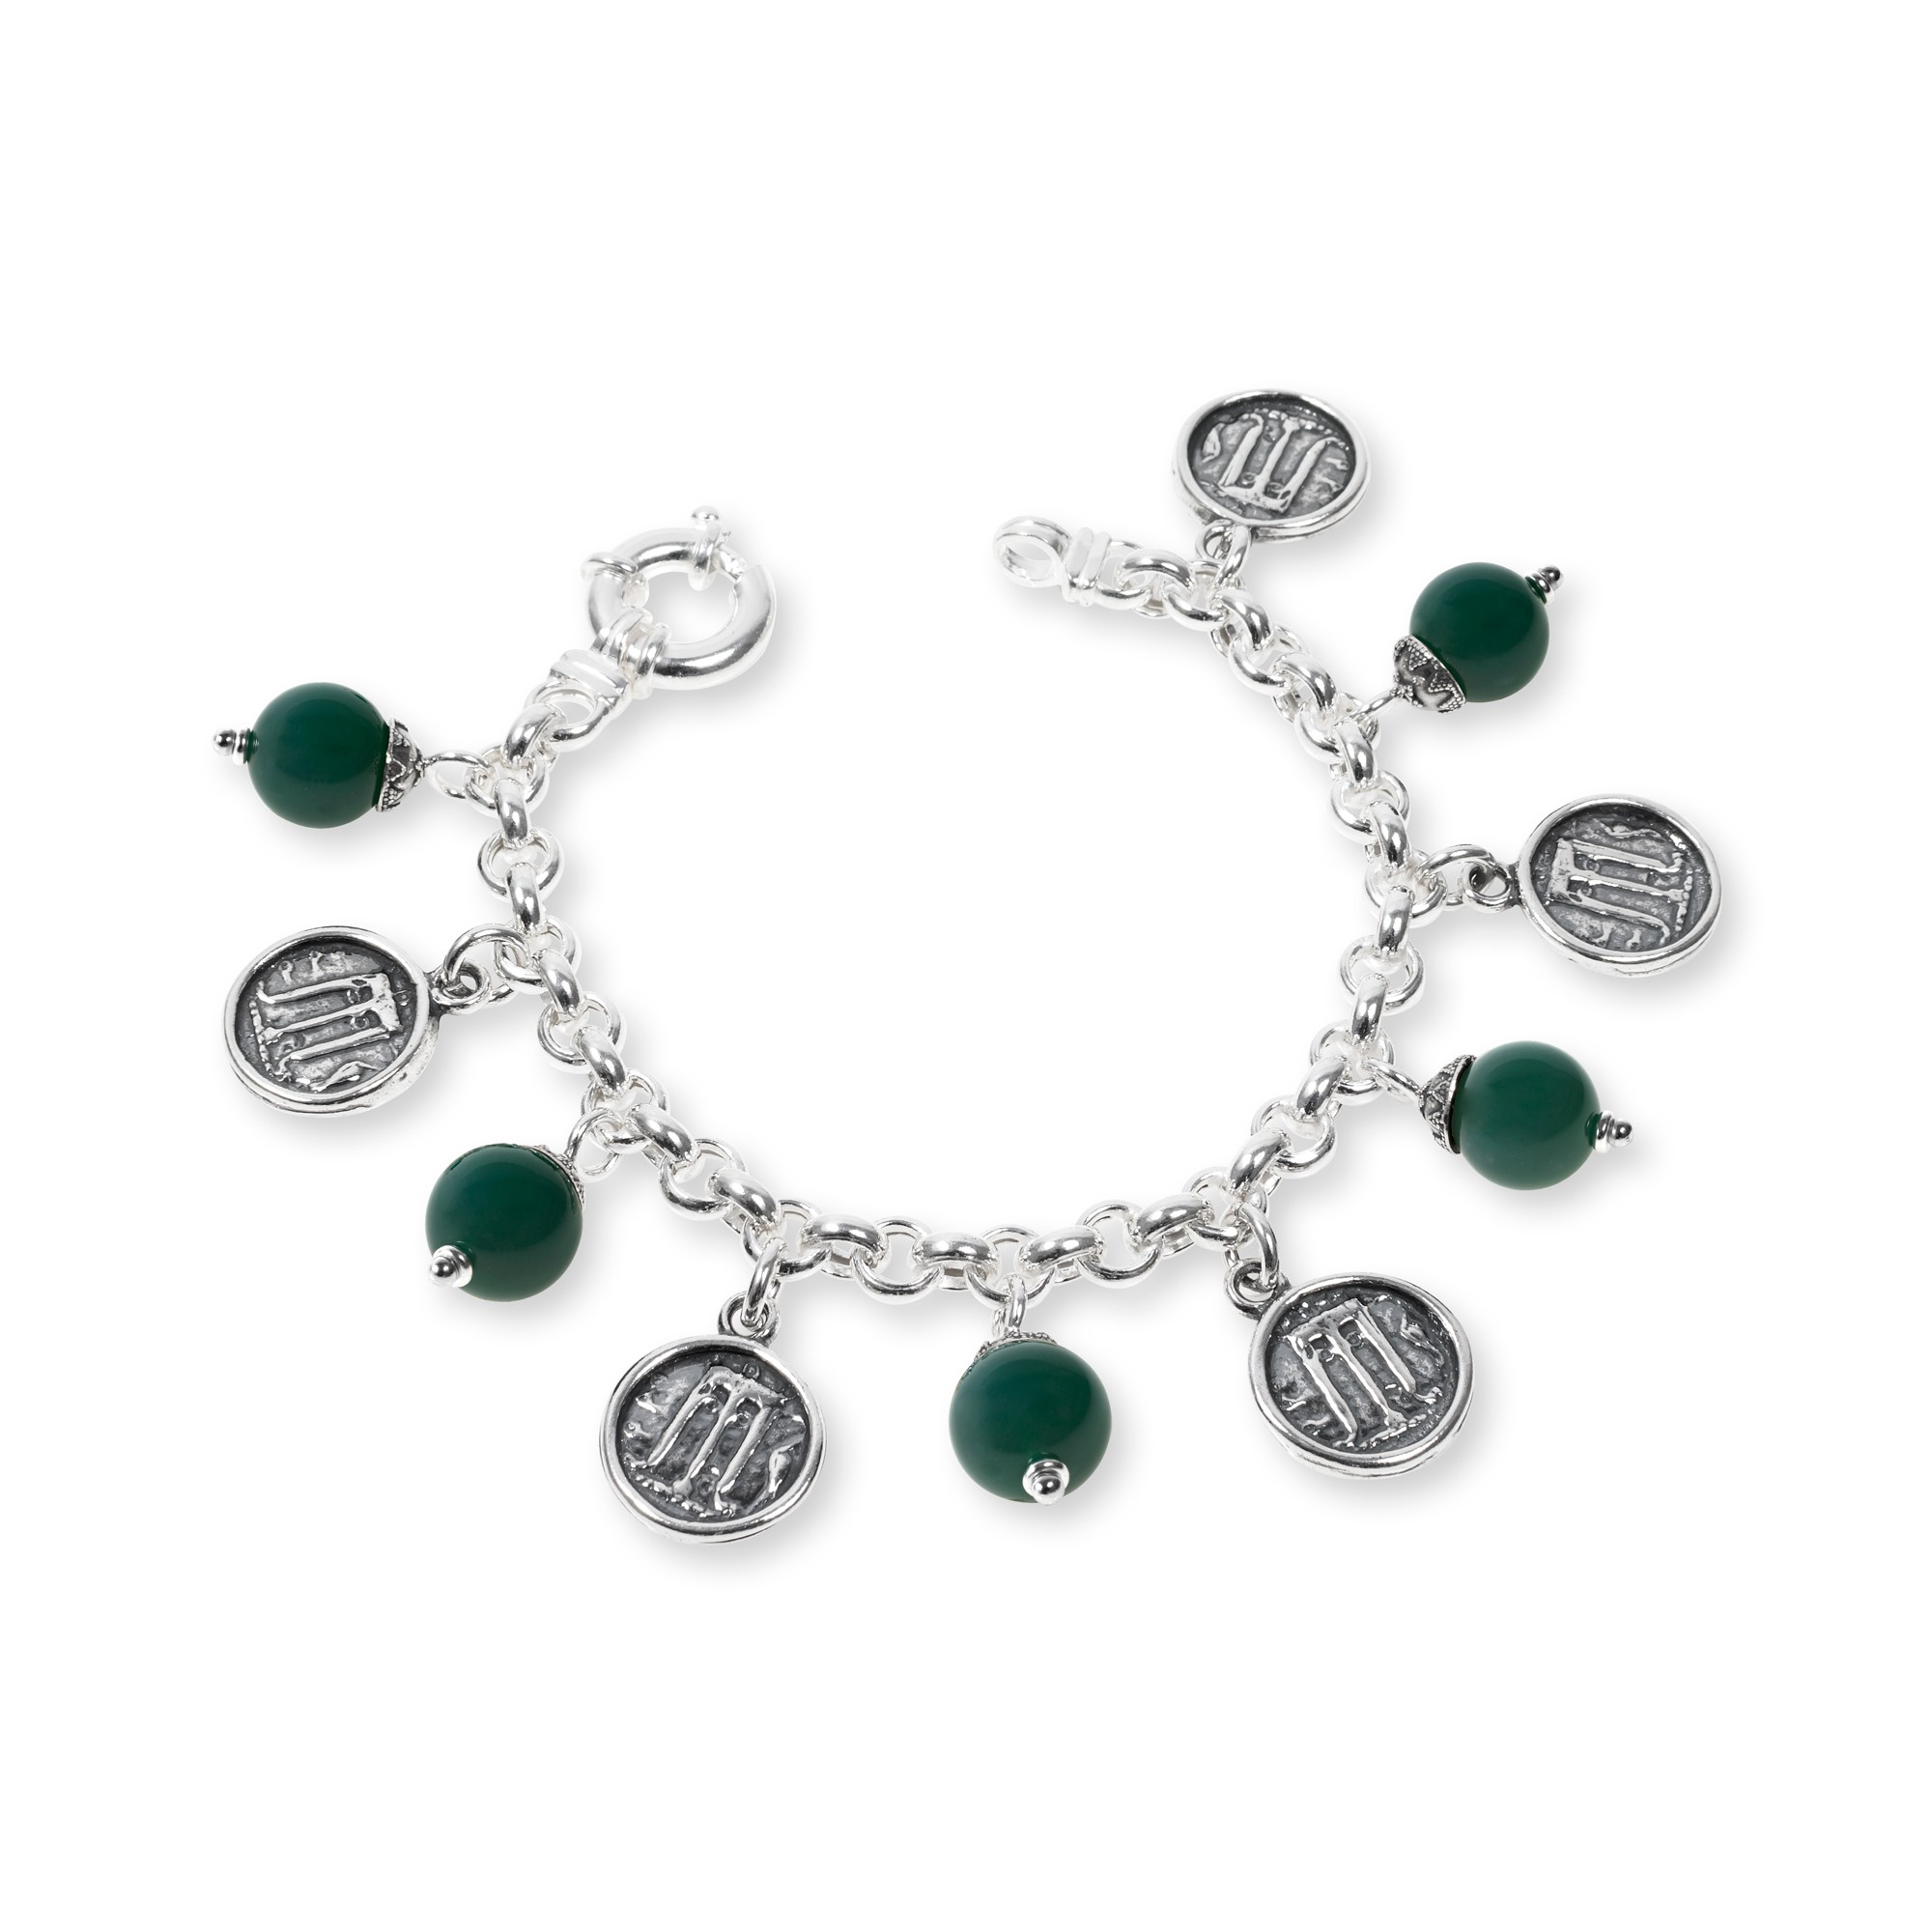 Silver Bracelet with colored stones and coins (33132)